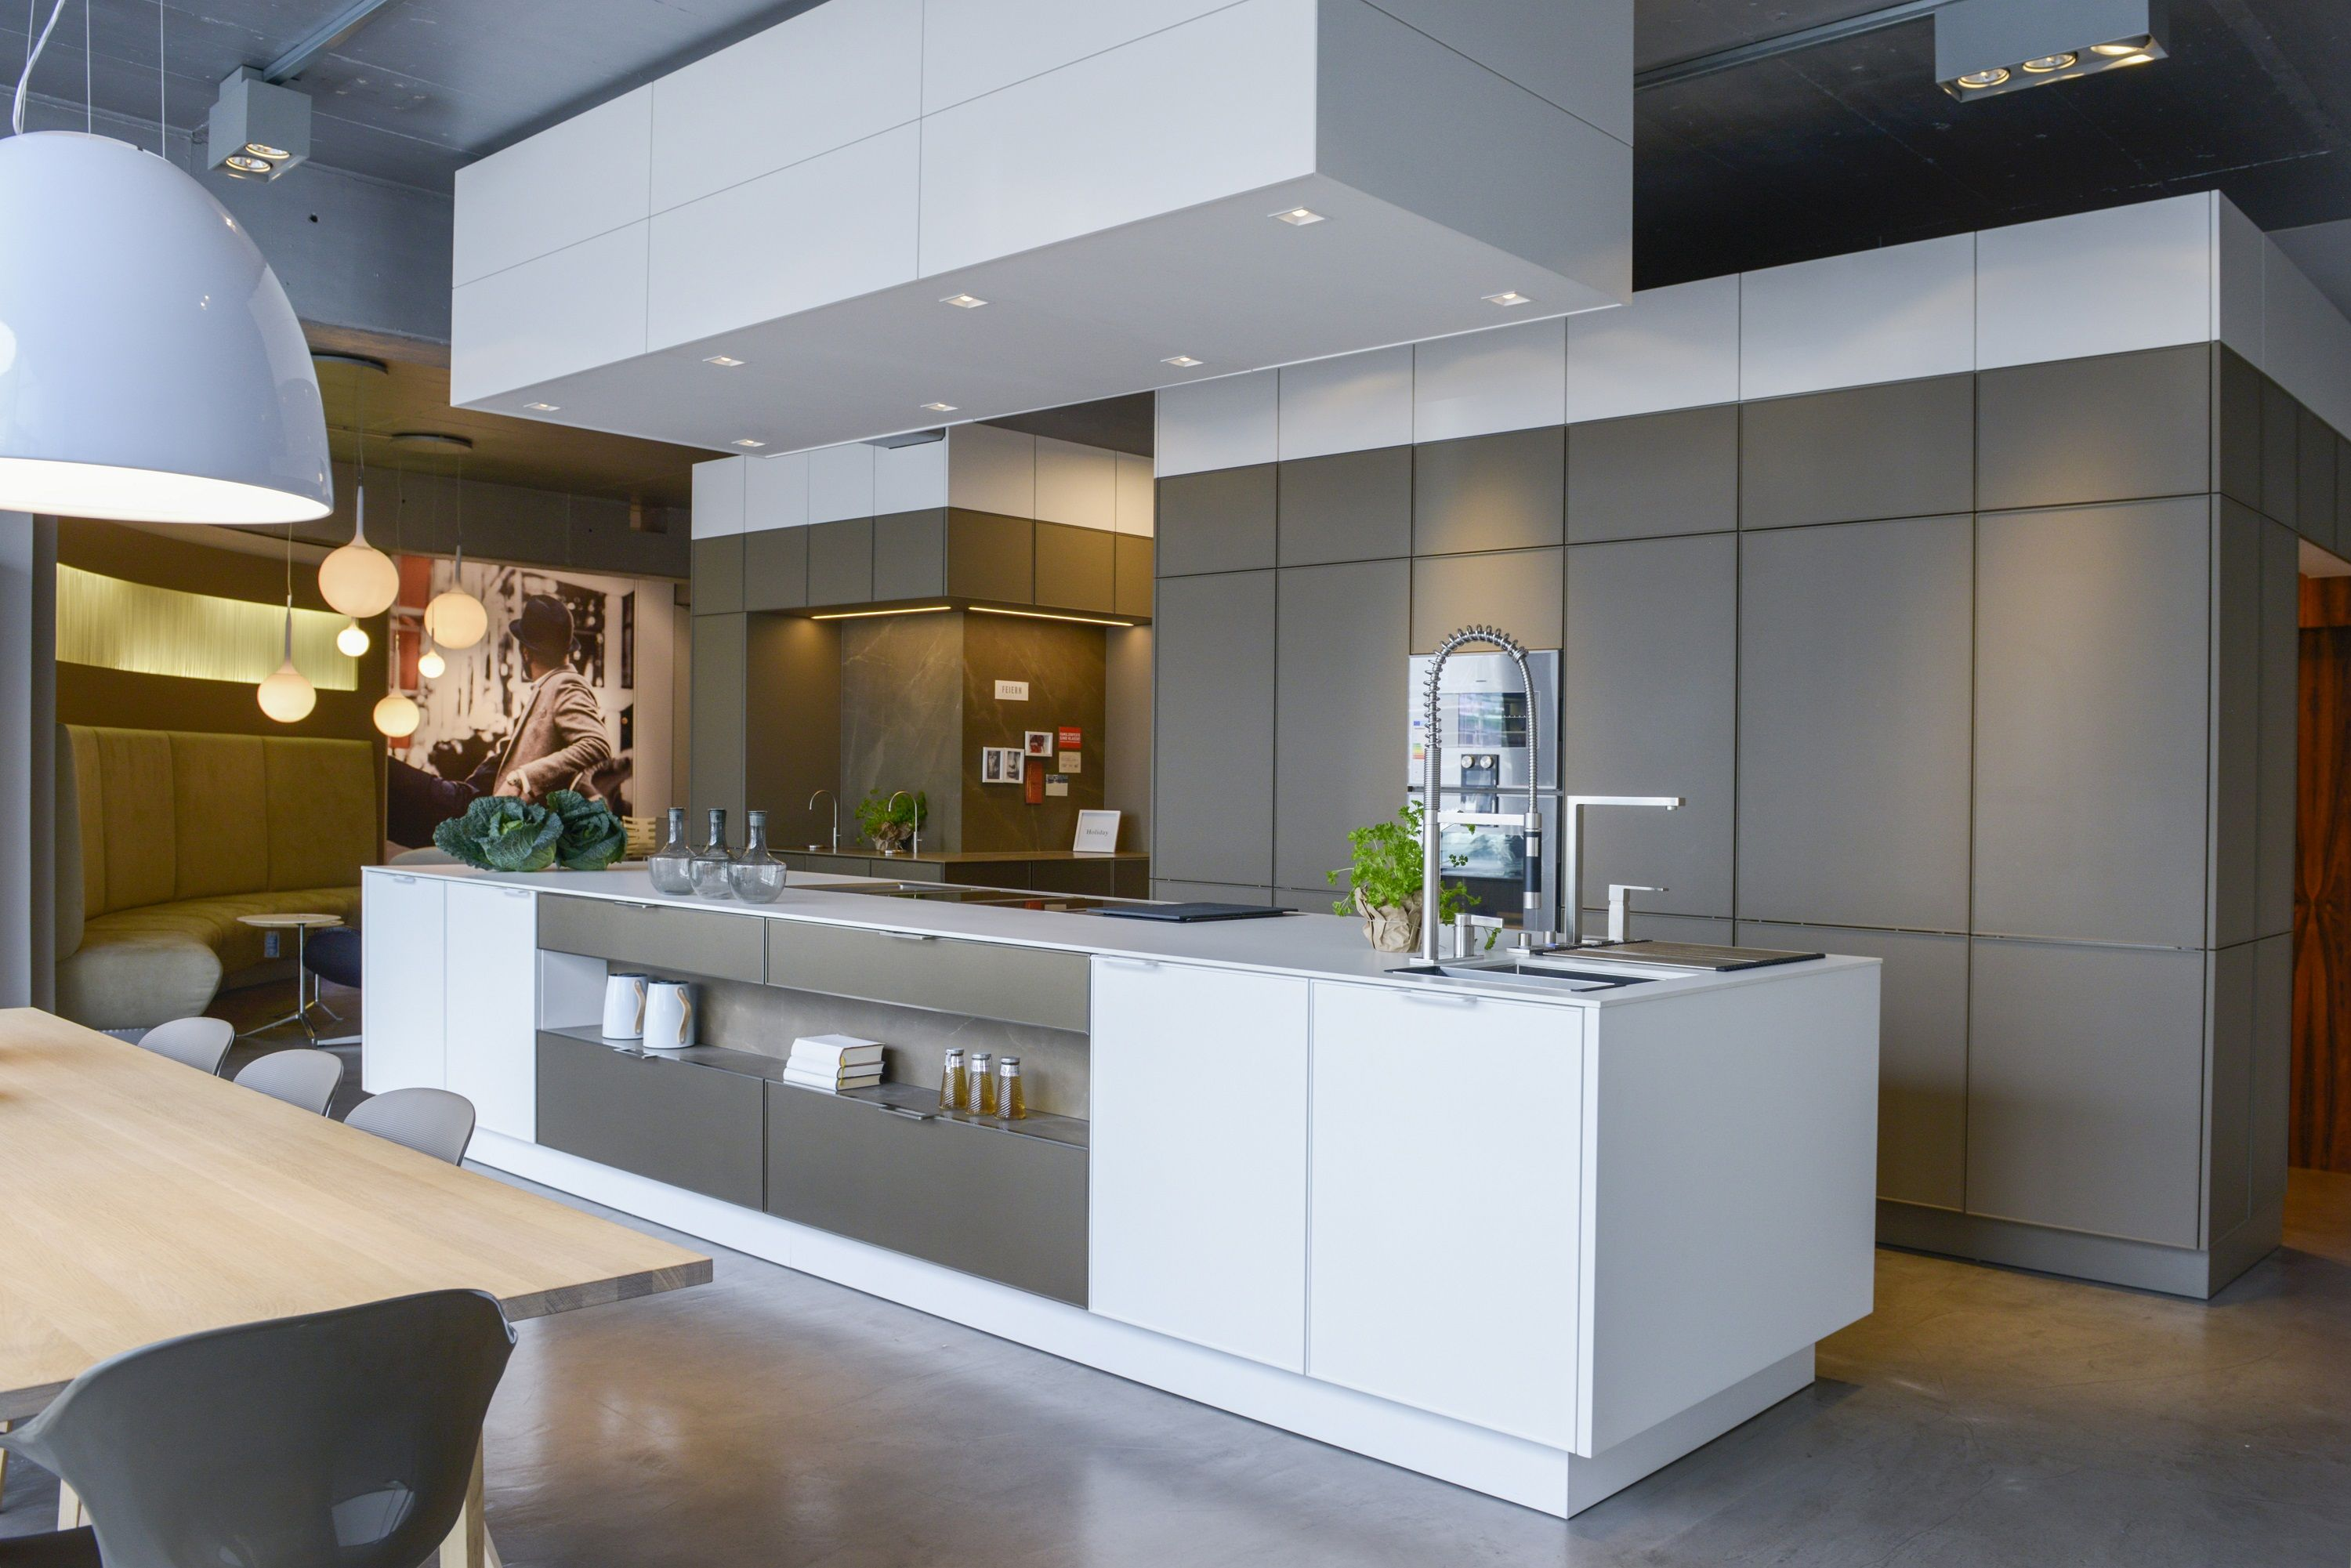 SieMatic in gold bronze brings sleek yet comfortable tones to a an open kitchen